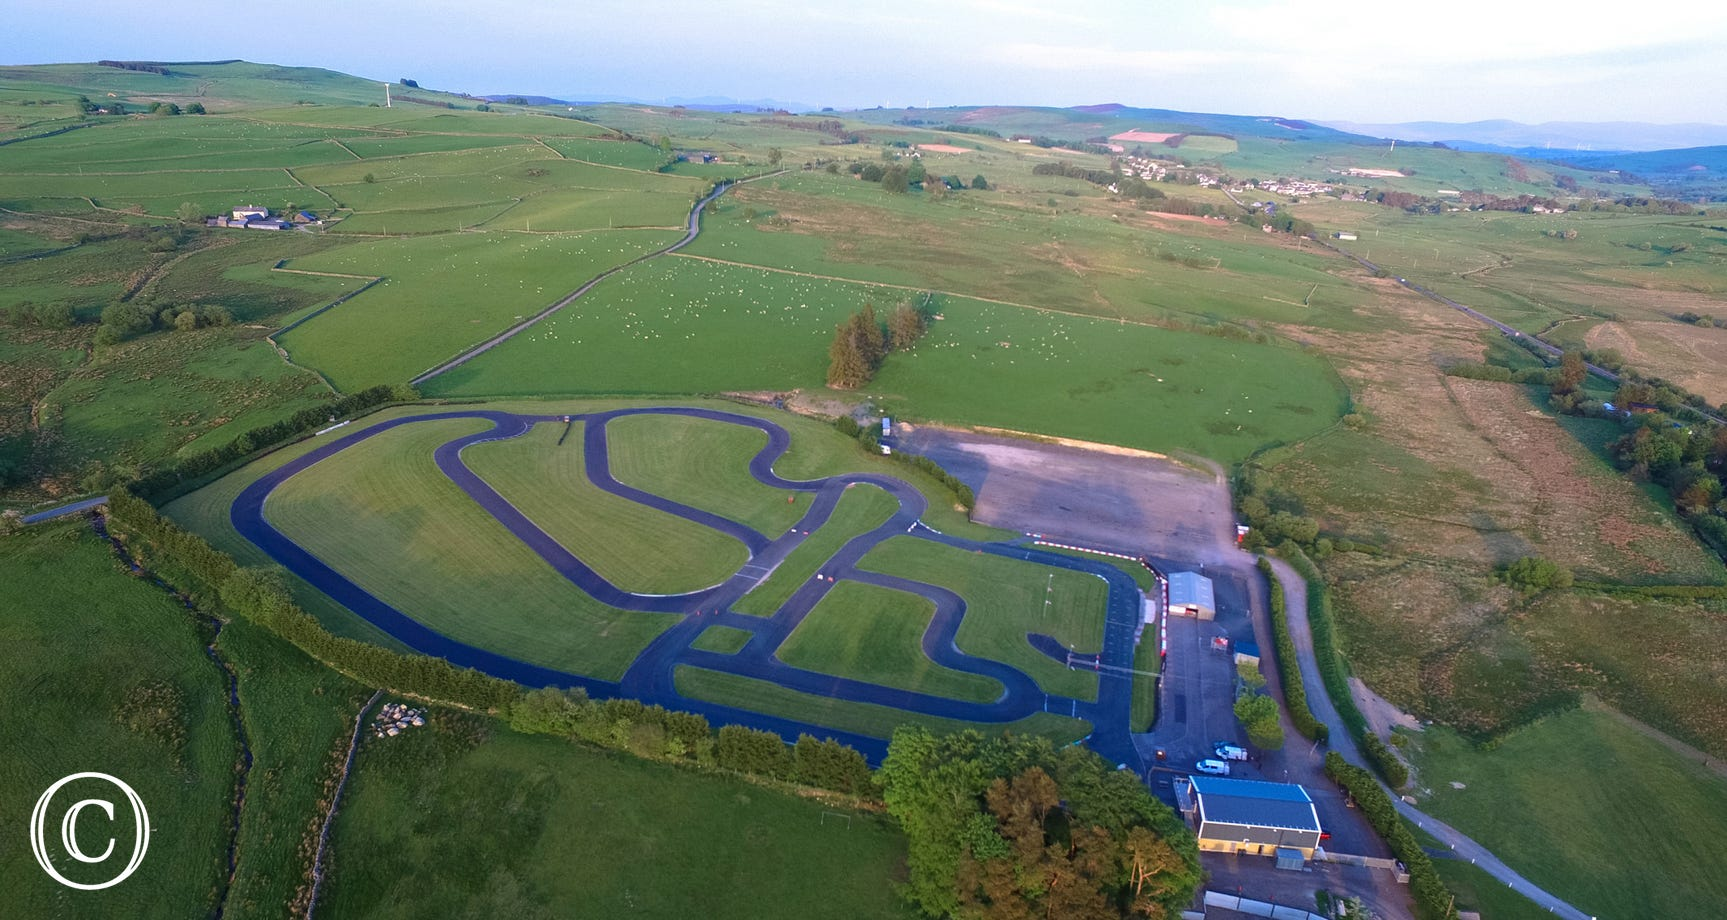 Championship go-karting circuit nearby to get the adrenalin flowing